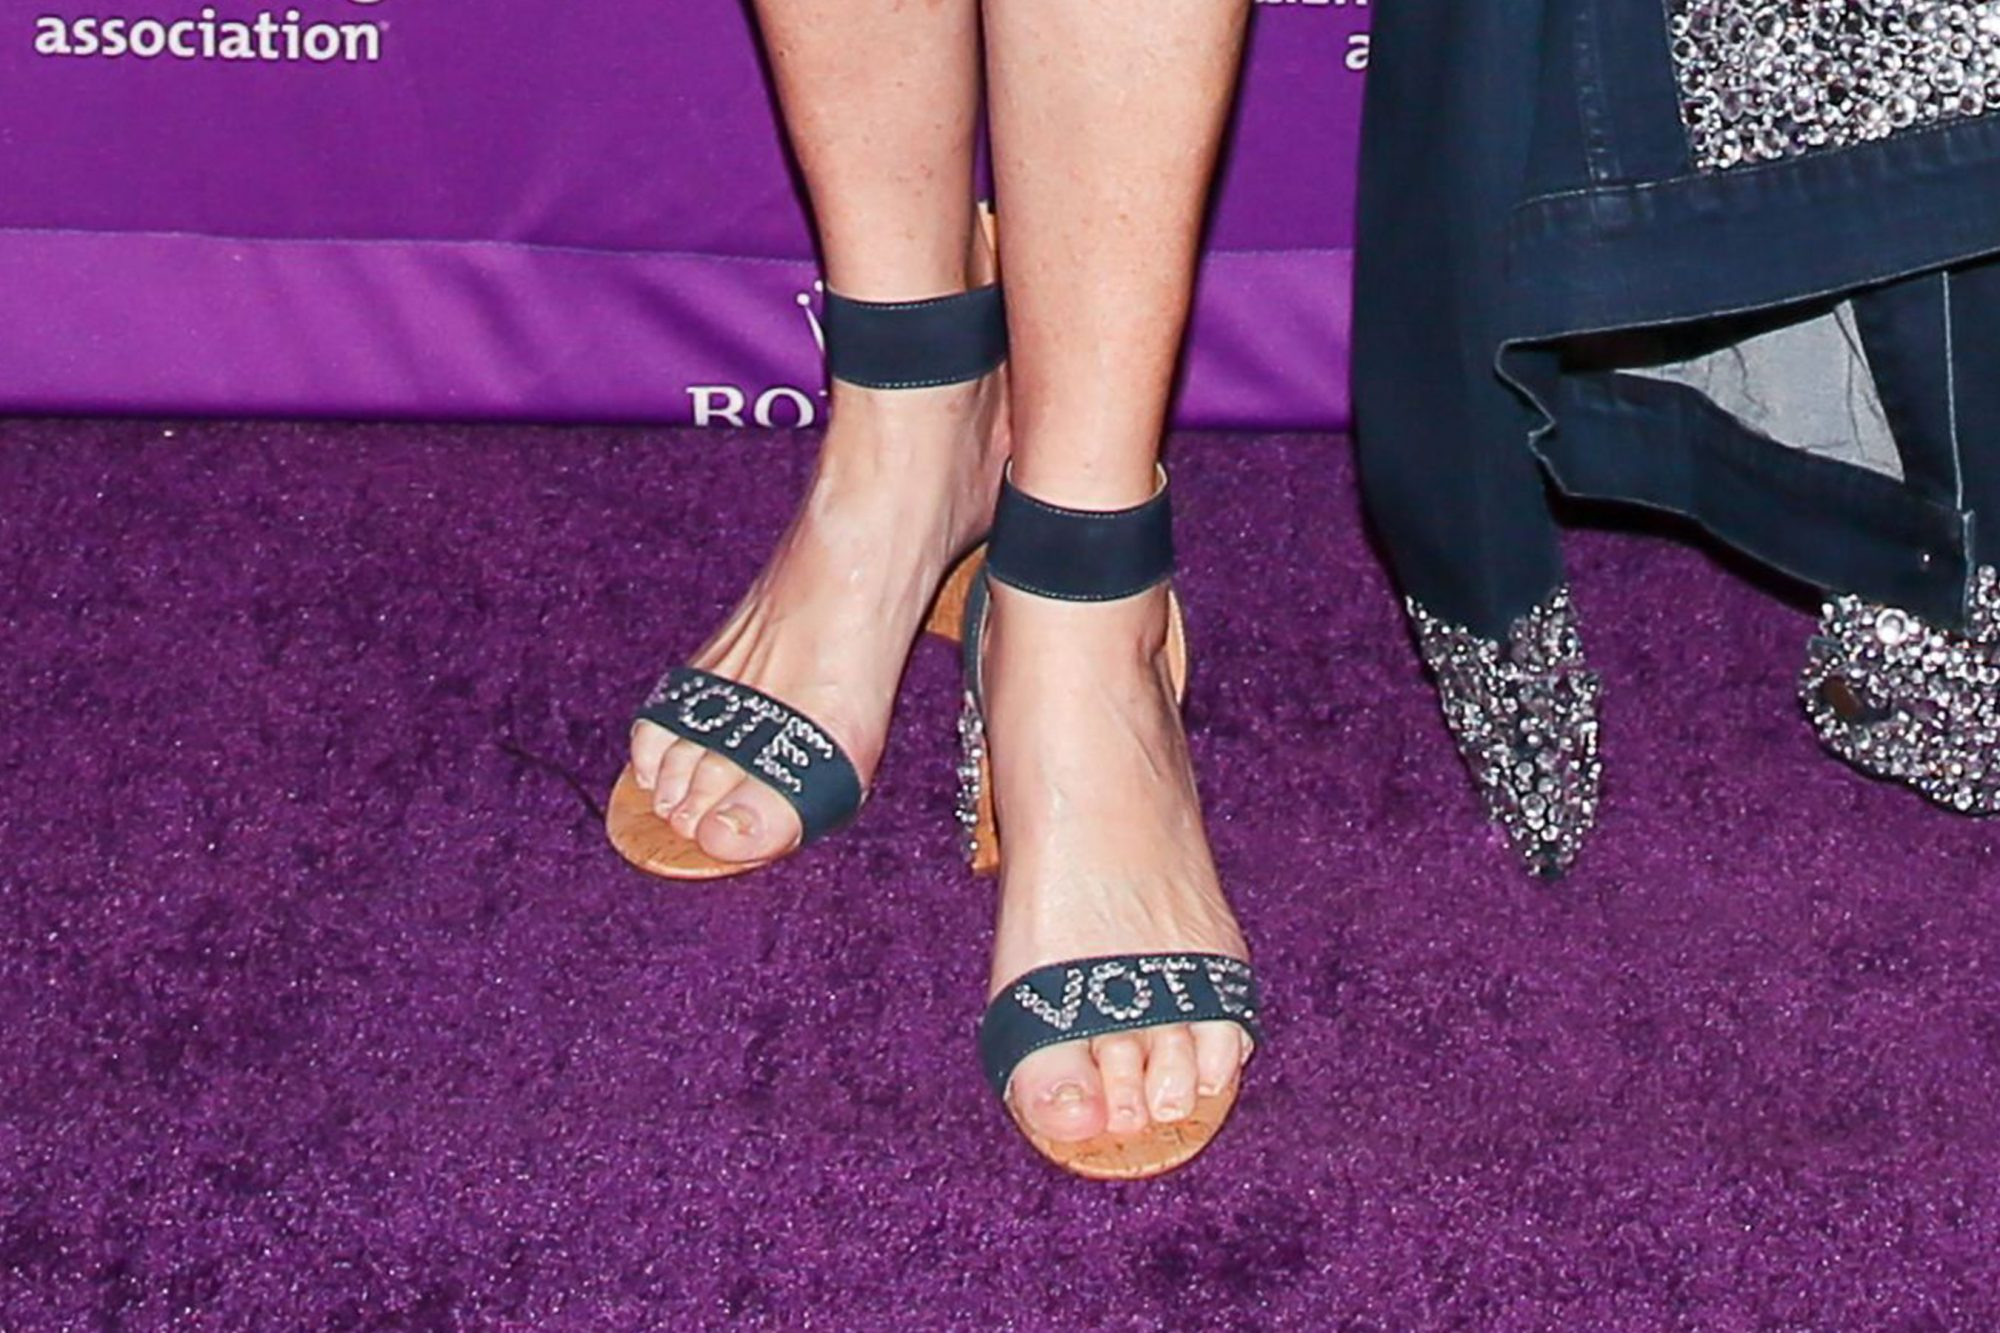 Alzheimer's Association Rita Hayworth Gala, New York, USA - 23 Oct 2018